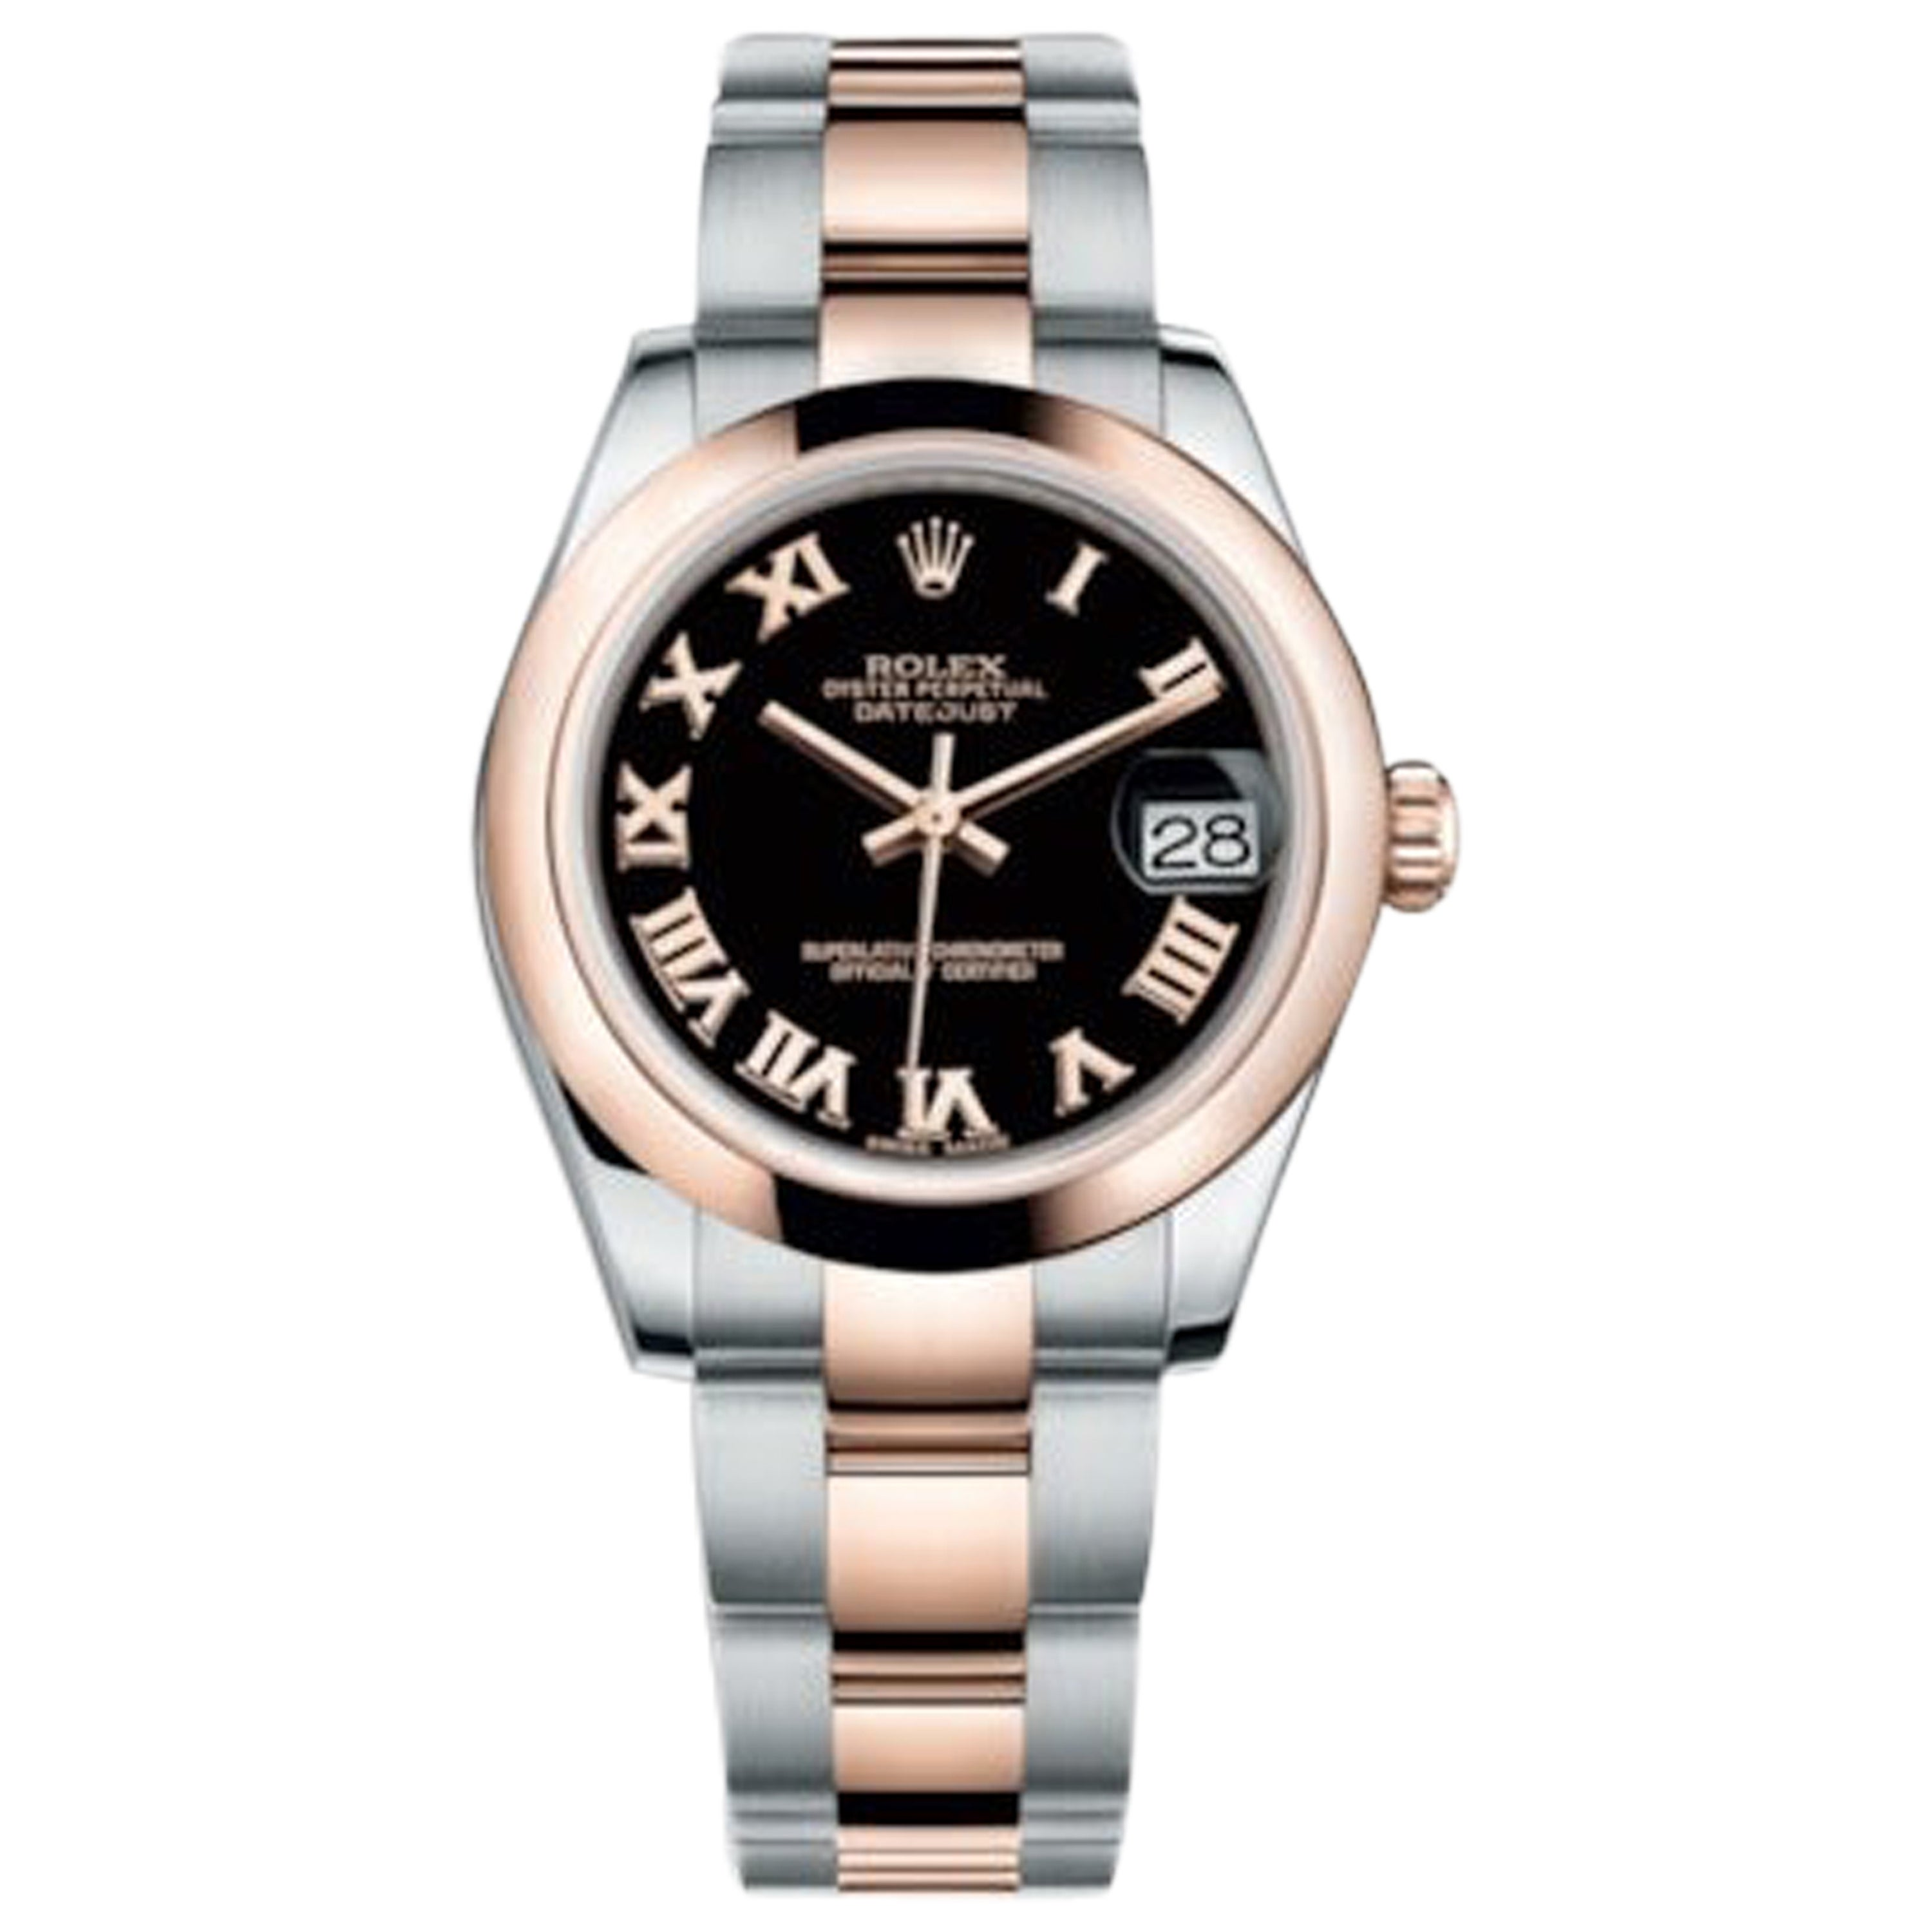 Rolex Datejust Stainless Steel and Rose Gold Ladies Watch 178241 Blk Roman